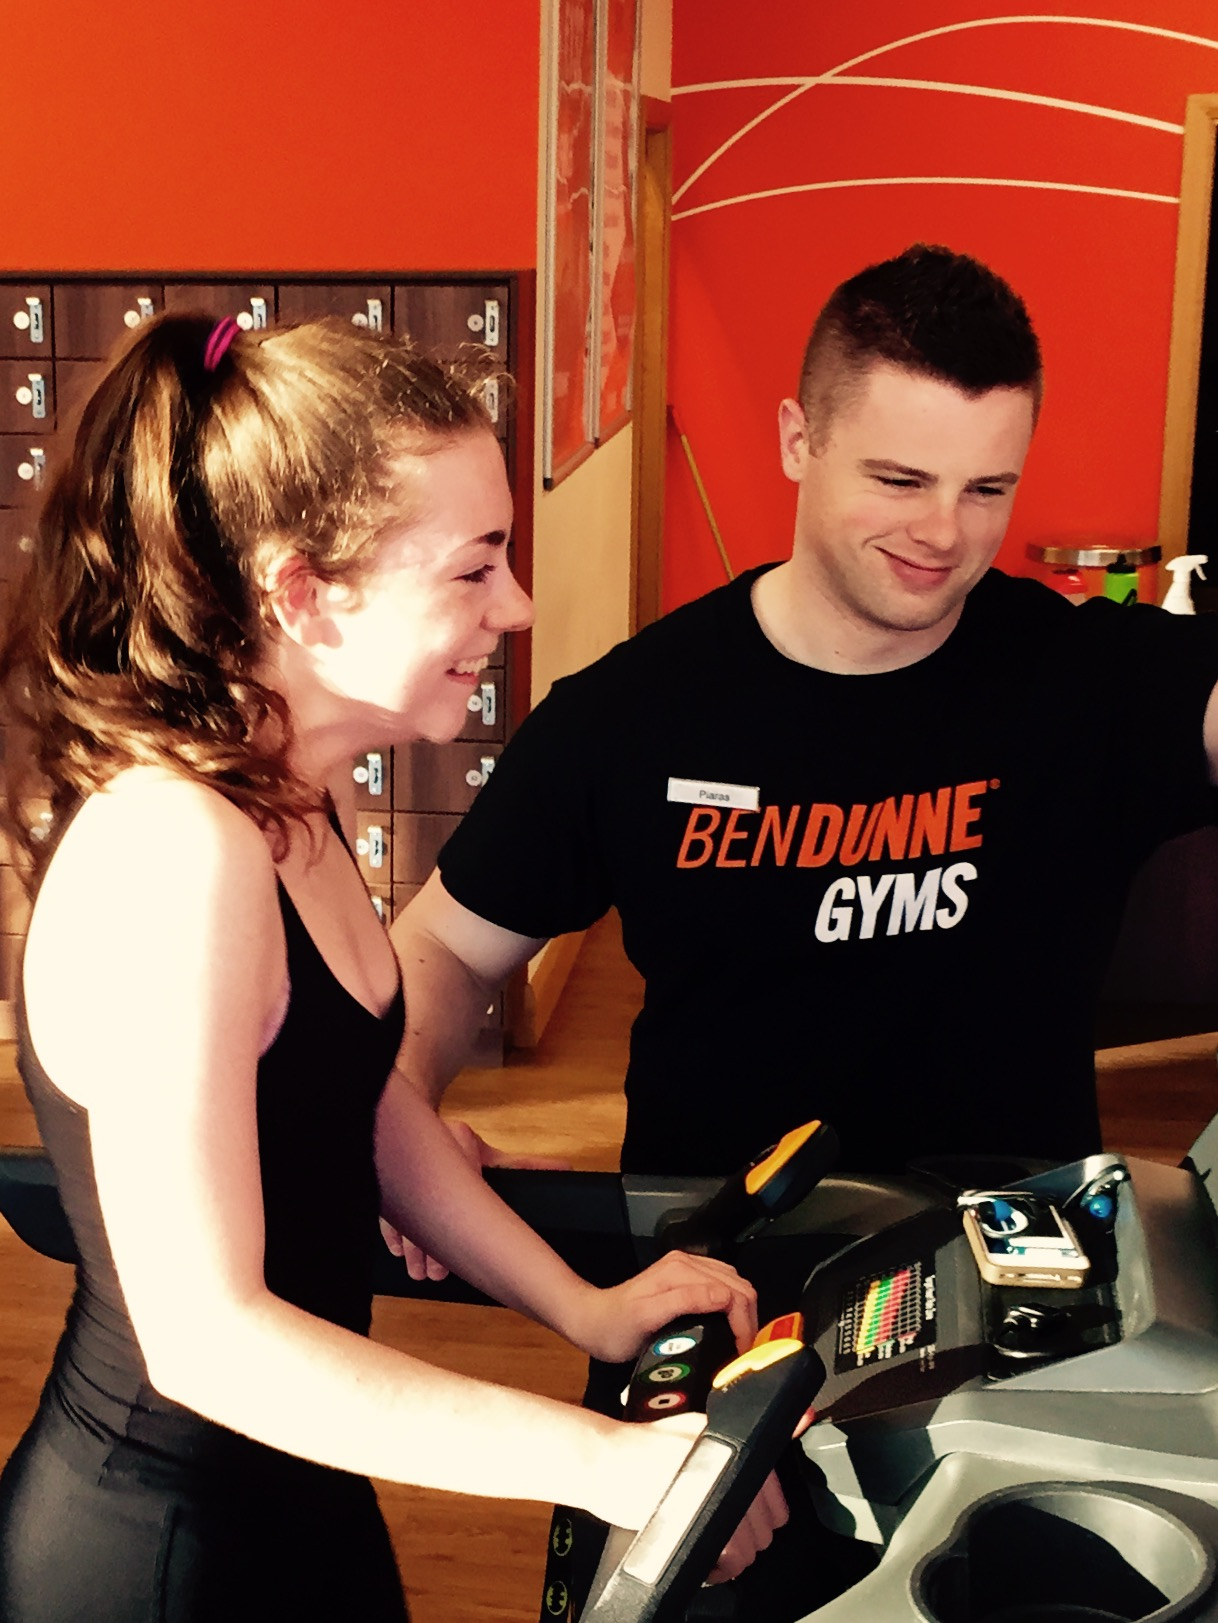 Katie being put through her paces in Ben Dunne Gym Loughlinstown1 - Copy